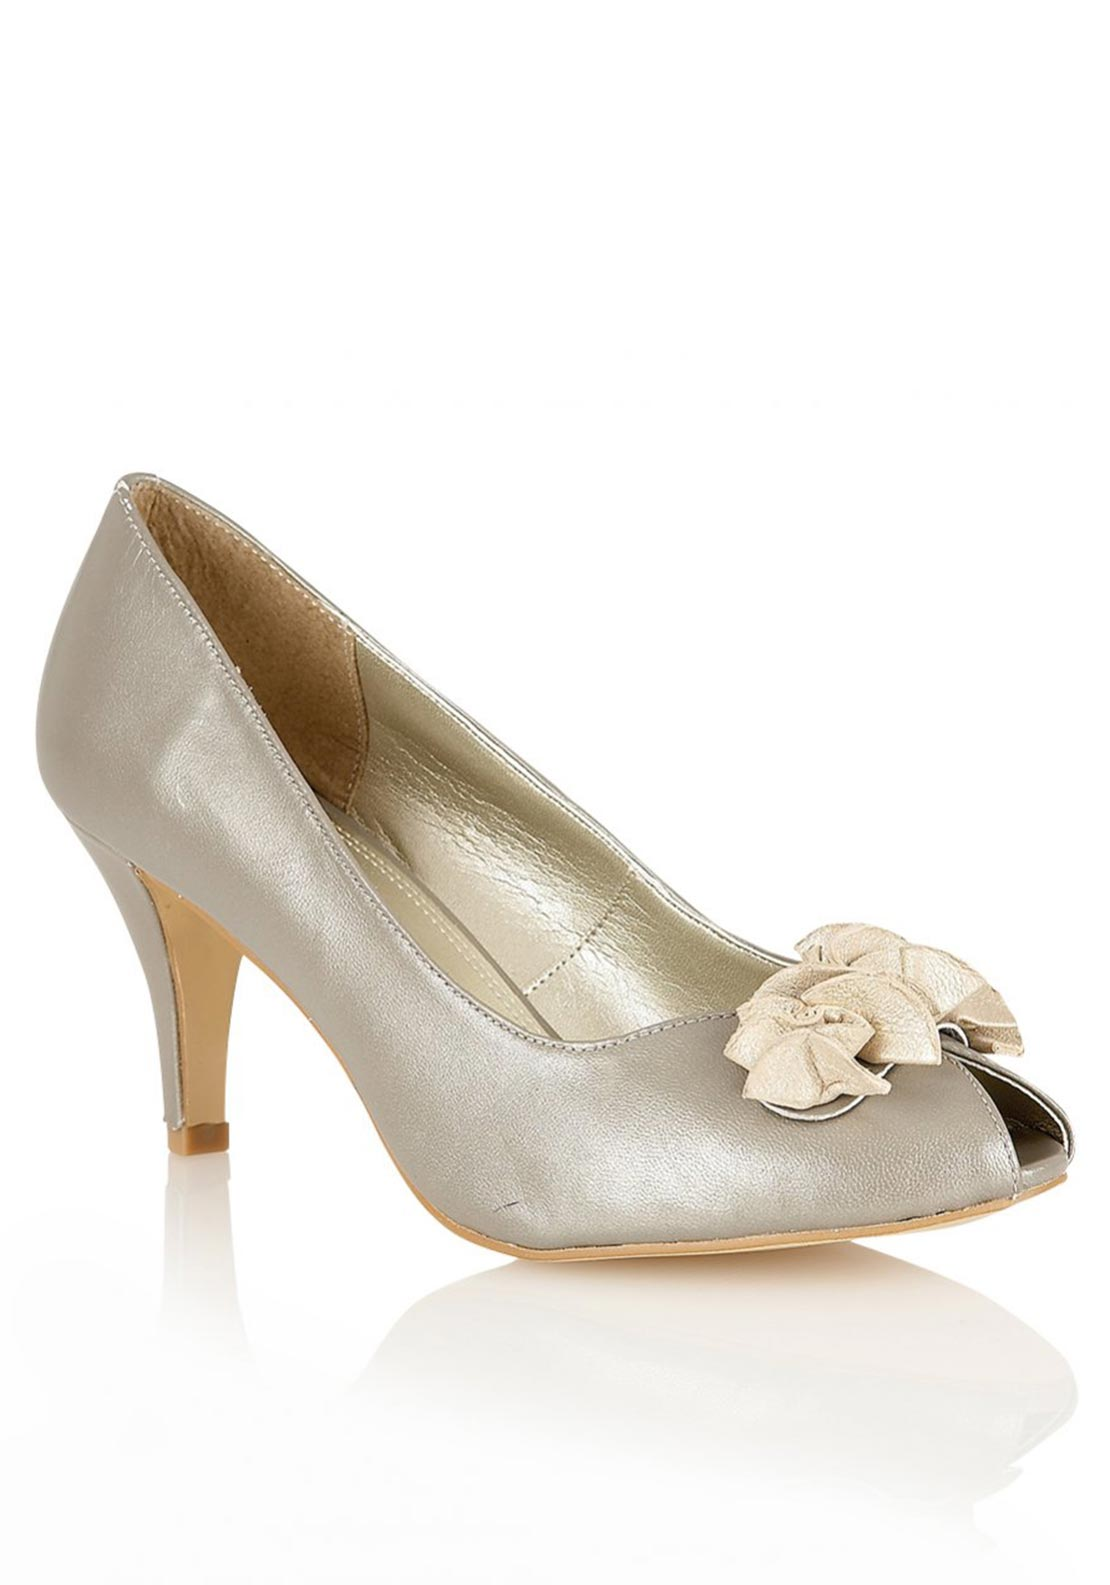 Lotus Womens Leather Ruffle Detail Peep Toe Heeled Shoes, Gold